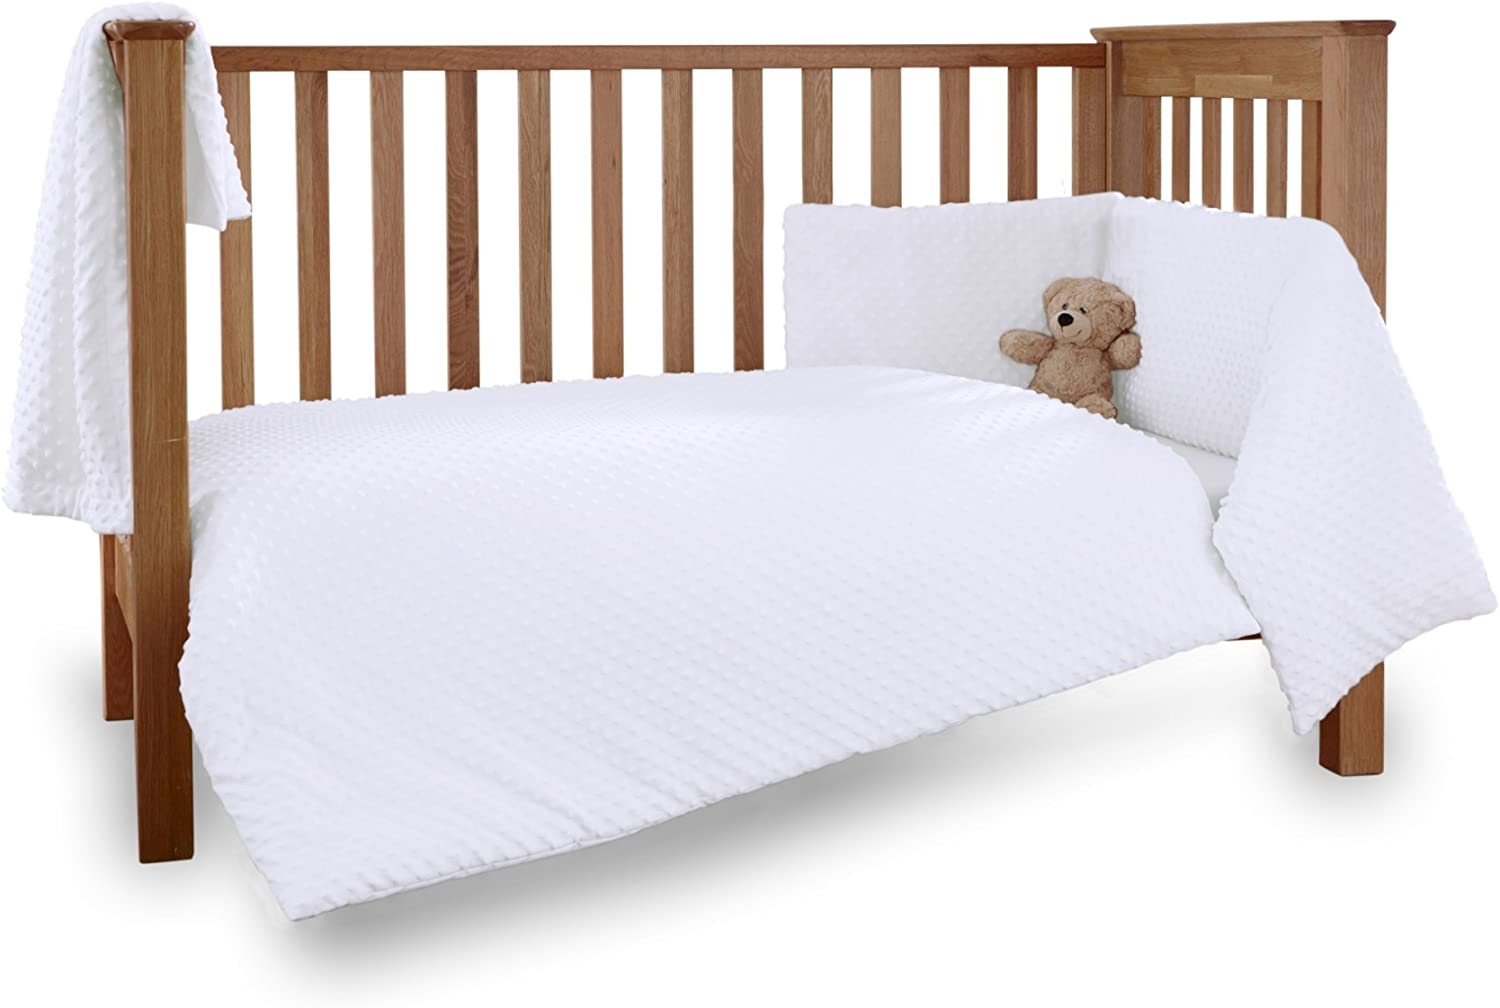 NEW WHITE 2in1 COT-BED 120 x 60 WITH A 3-PIECE BEDDING no 8